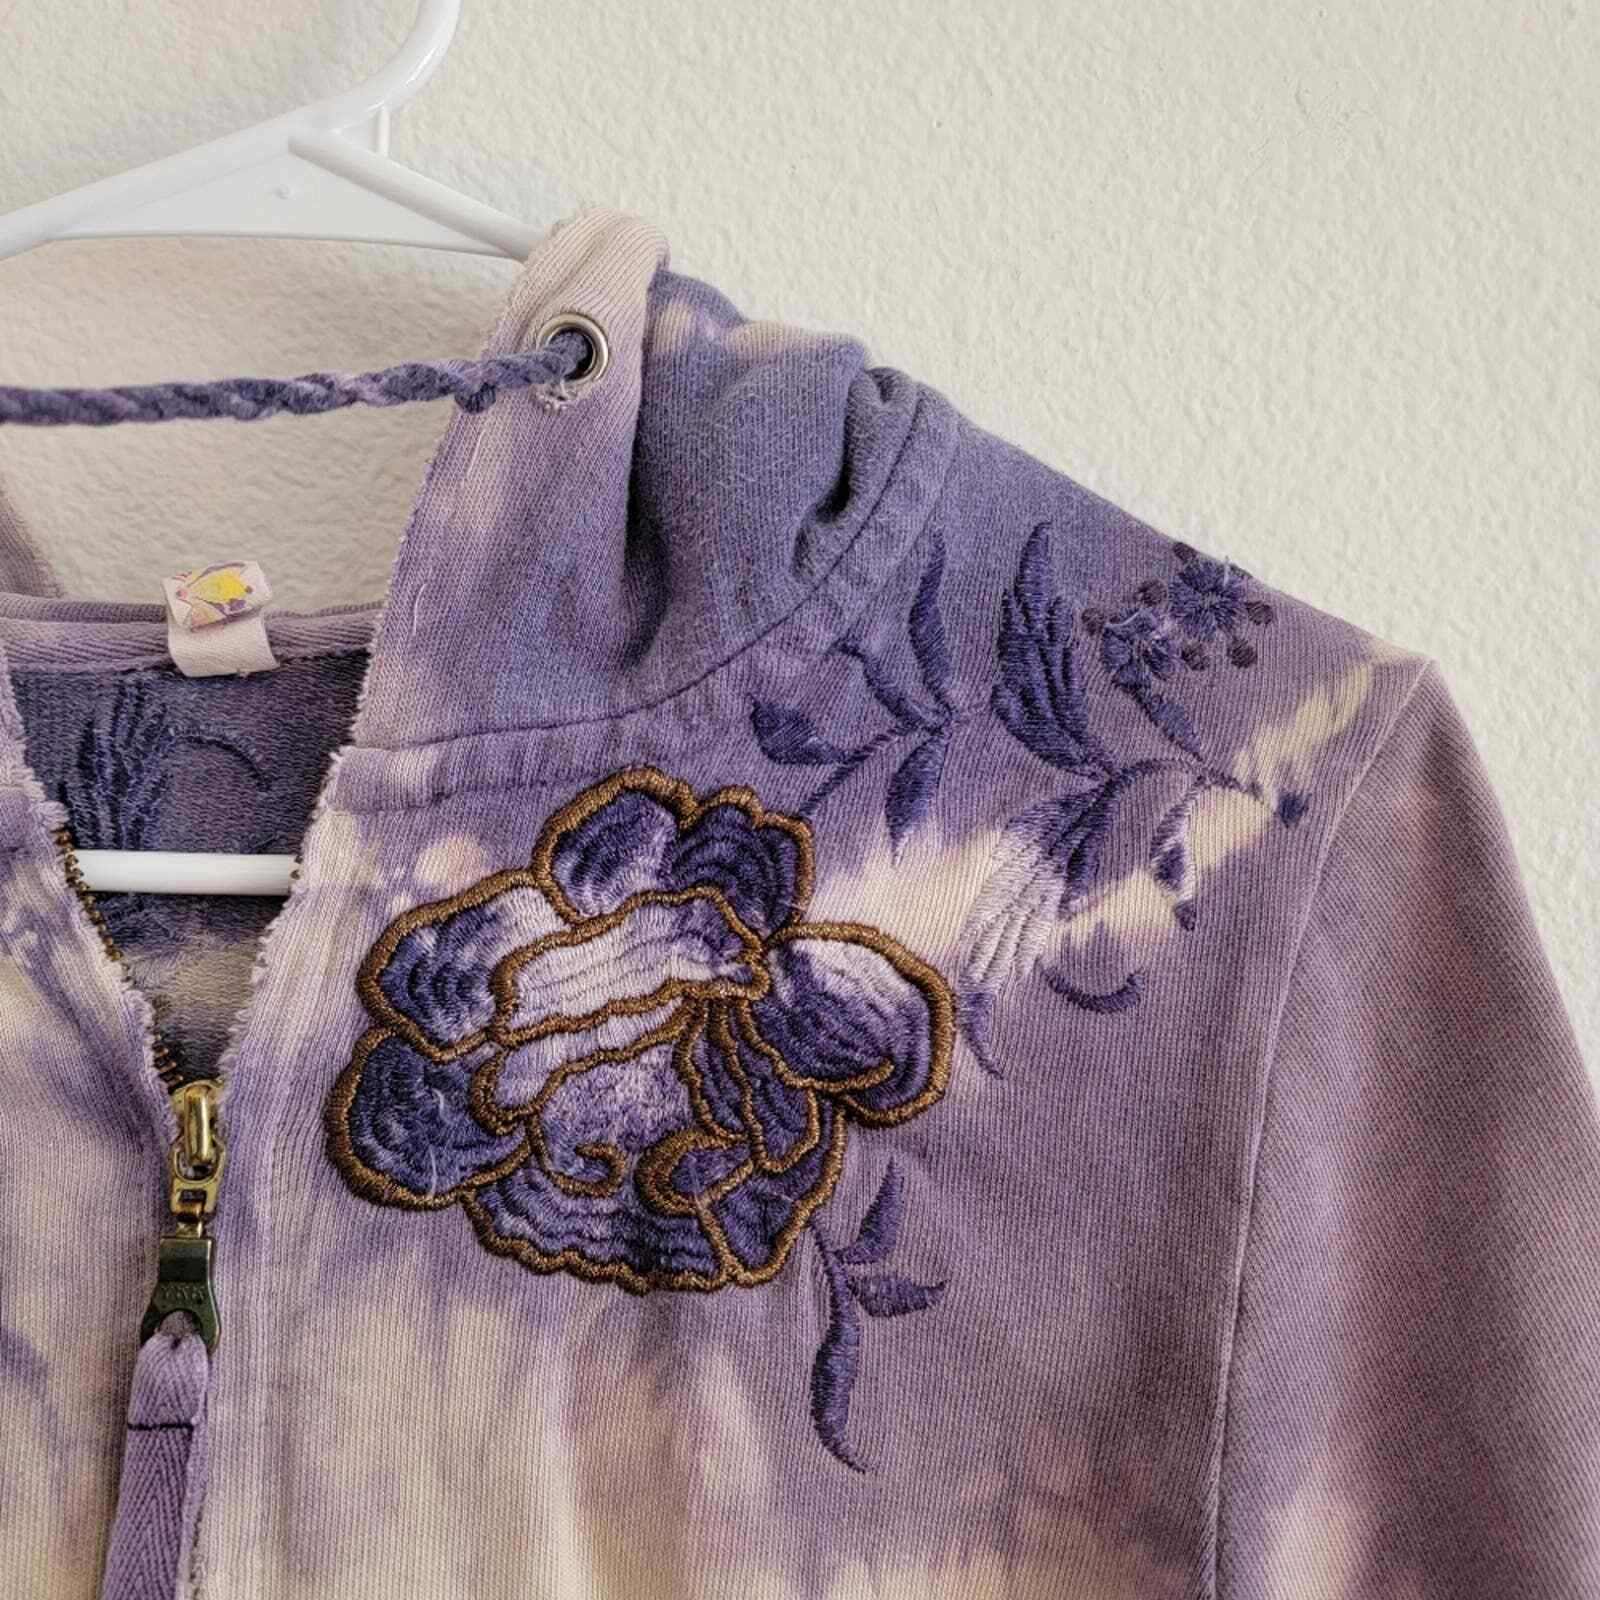 Penelope Violet Tie-Dye Embroidered Zip Up Sweater - image 6